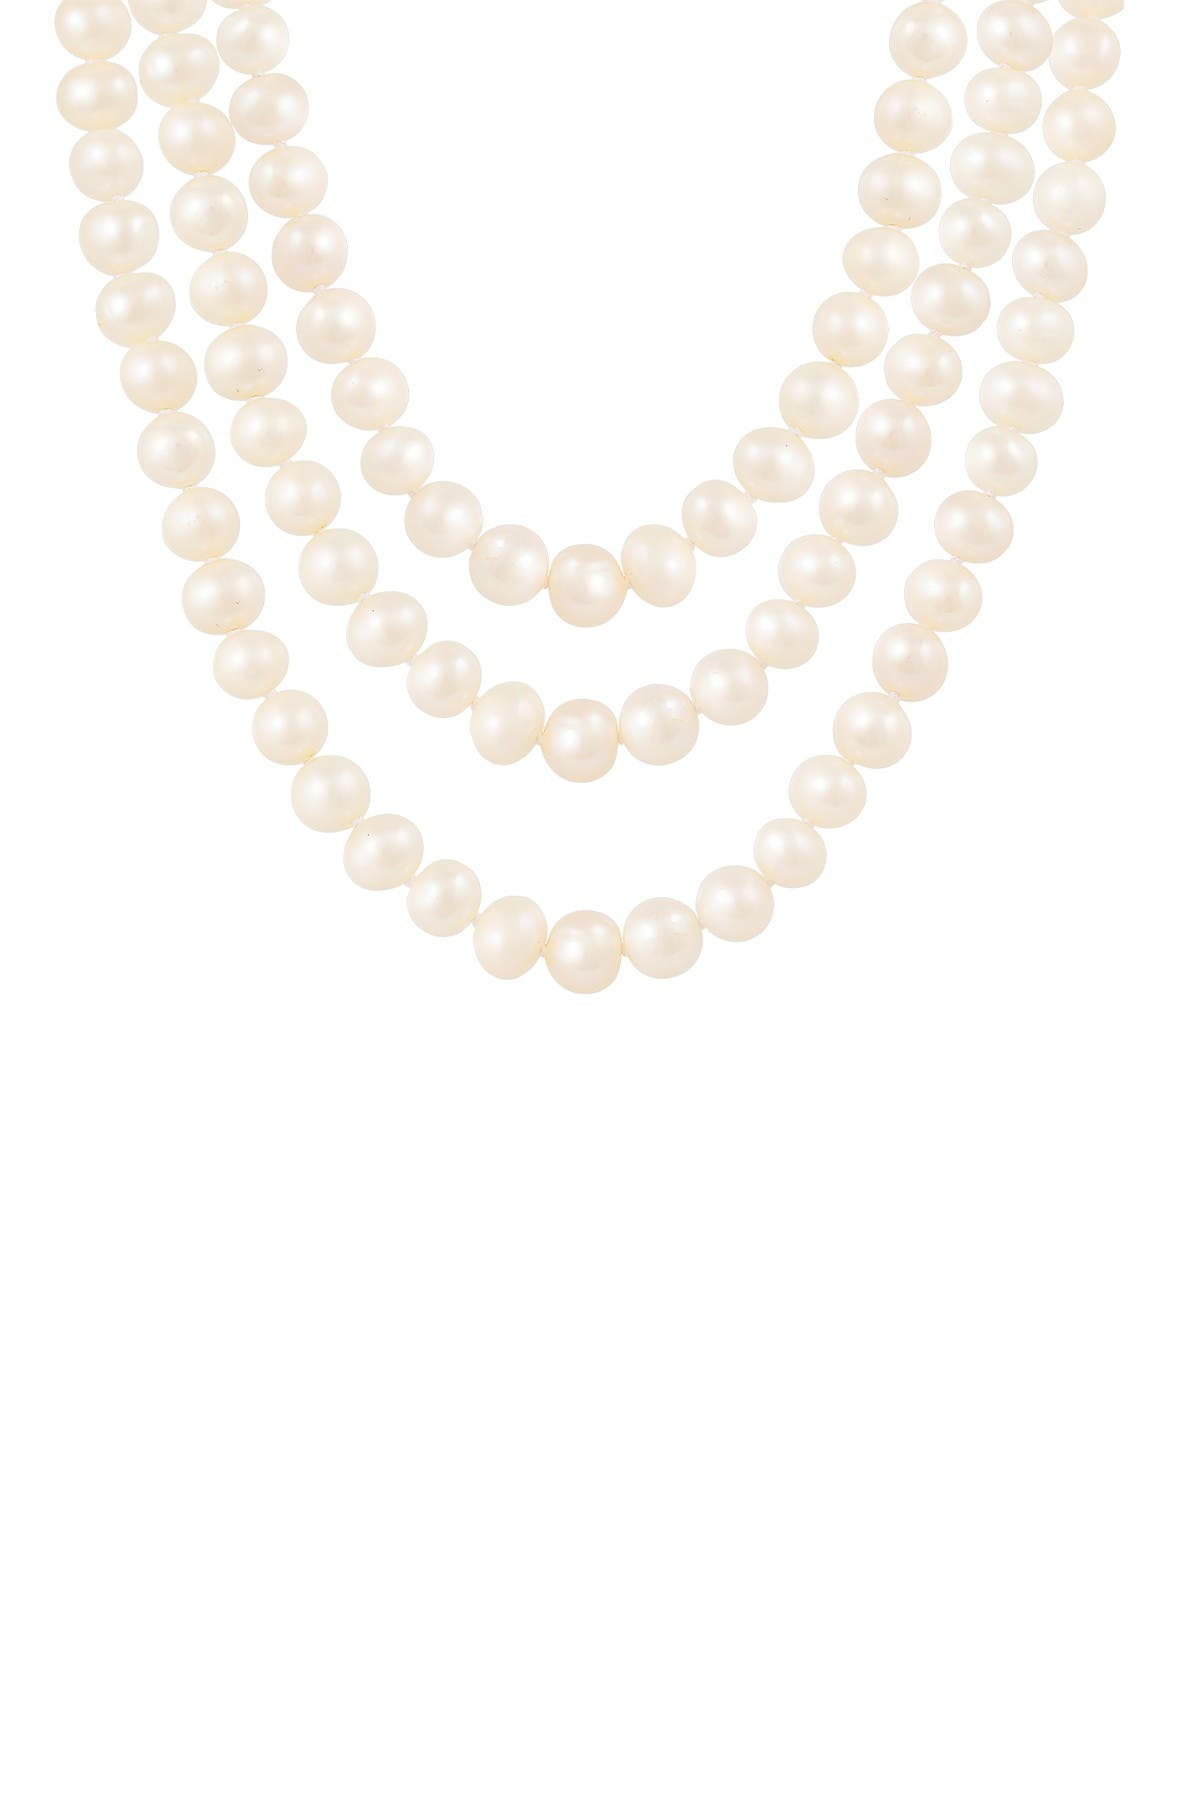 Image of Splendid Pearls Endless 8-9mm Freshwater Pearl Necklace